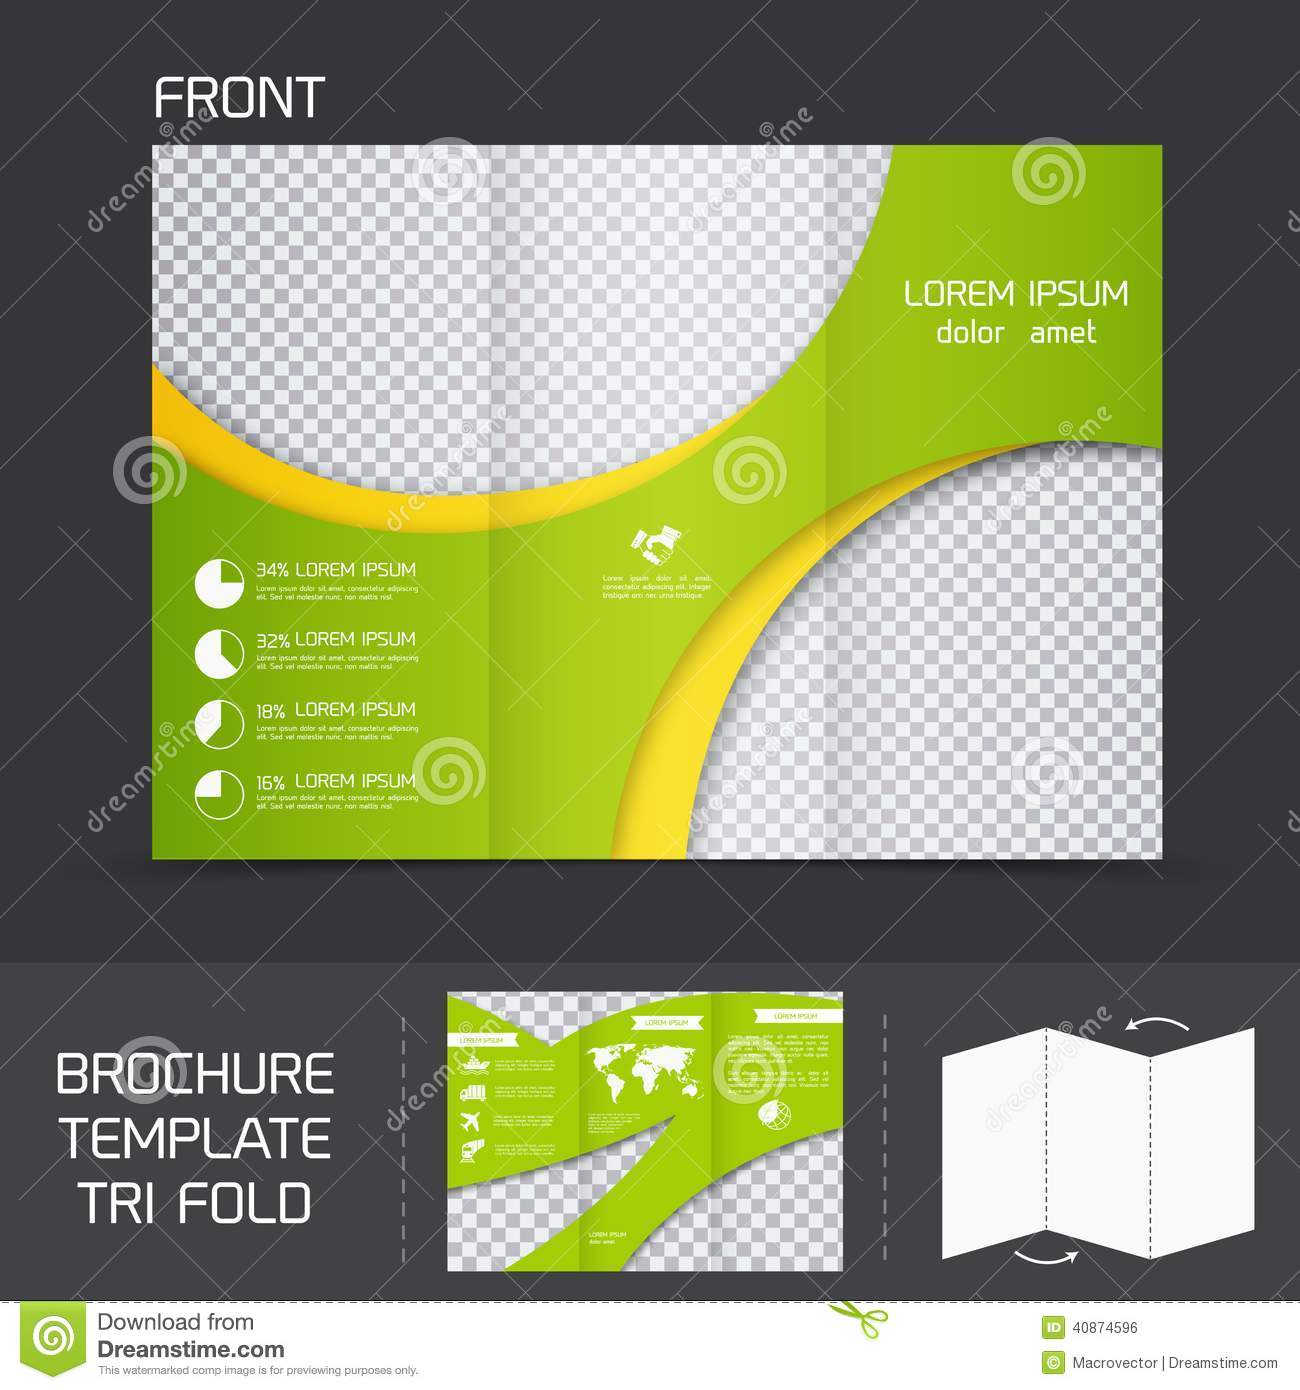 Tri fold newsletter templates free militaryalicious tri fold newsletter templates free spiritdancerdesigns Images